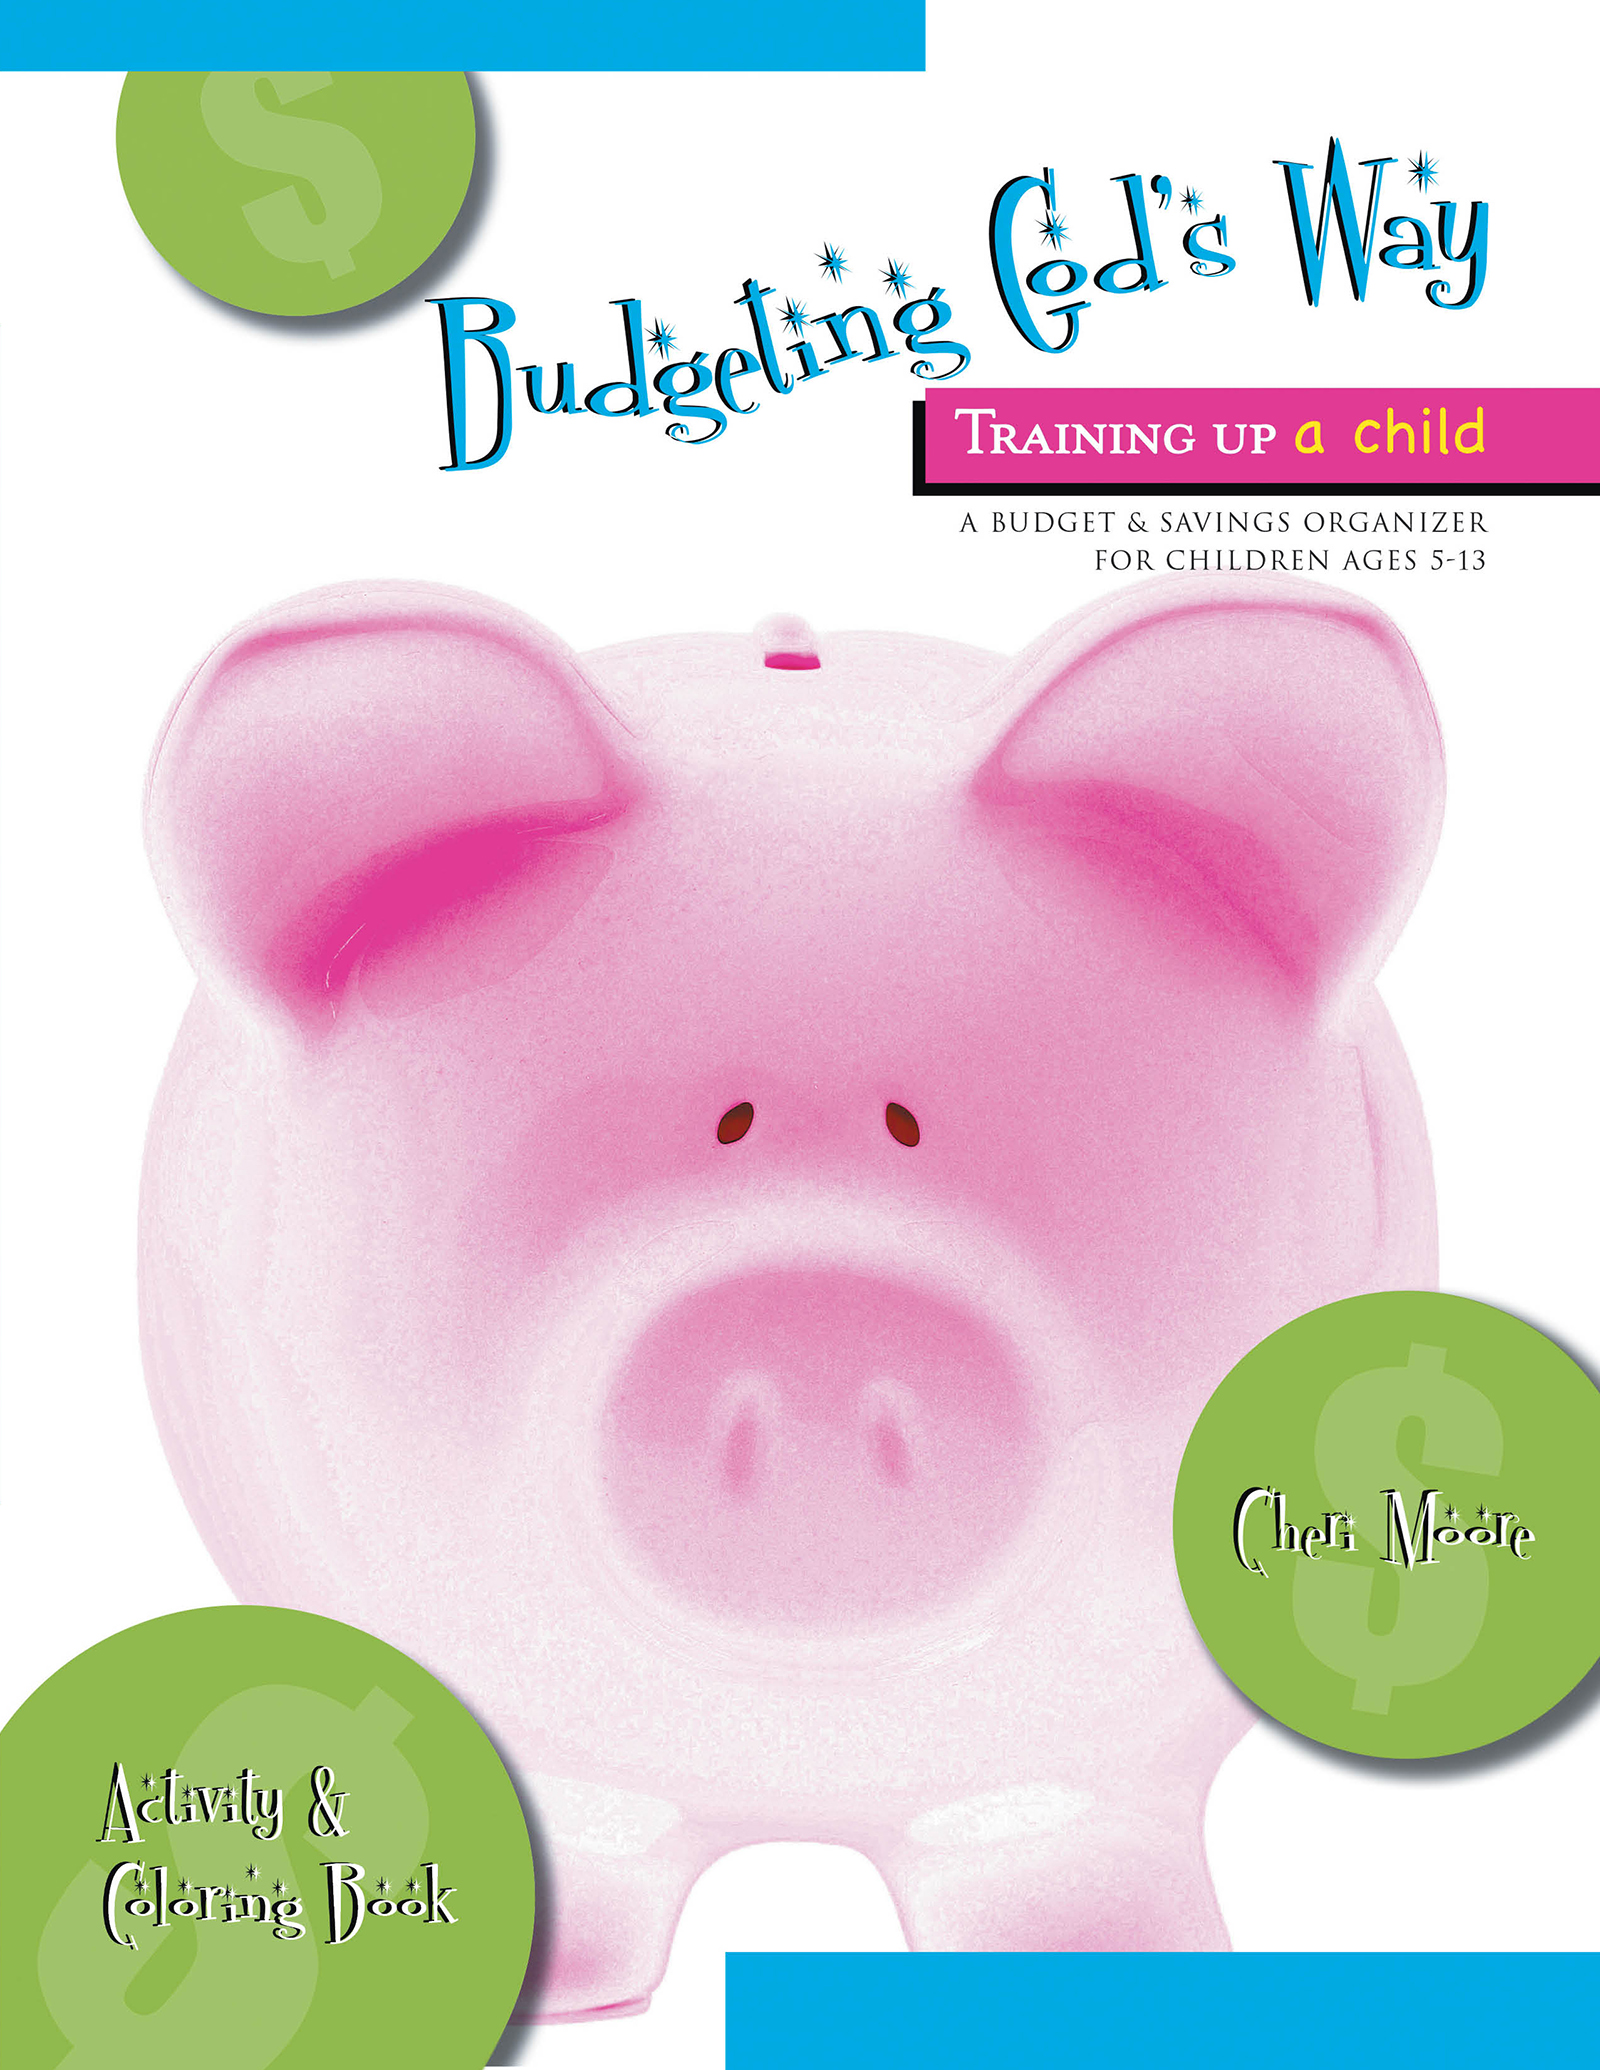 Budgeting God's Way: Training Up A Child by Cheri Moore